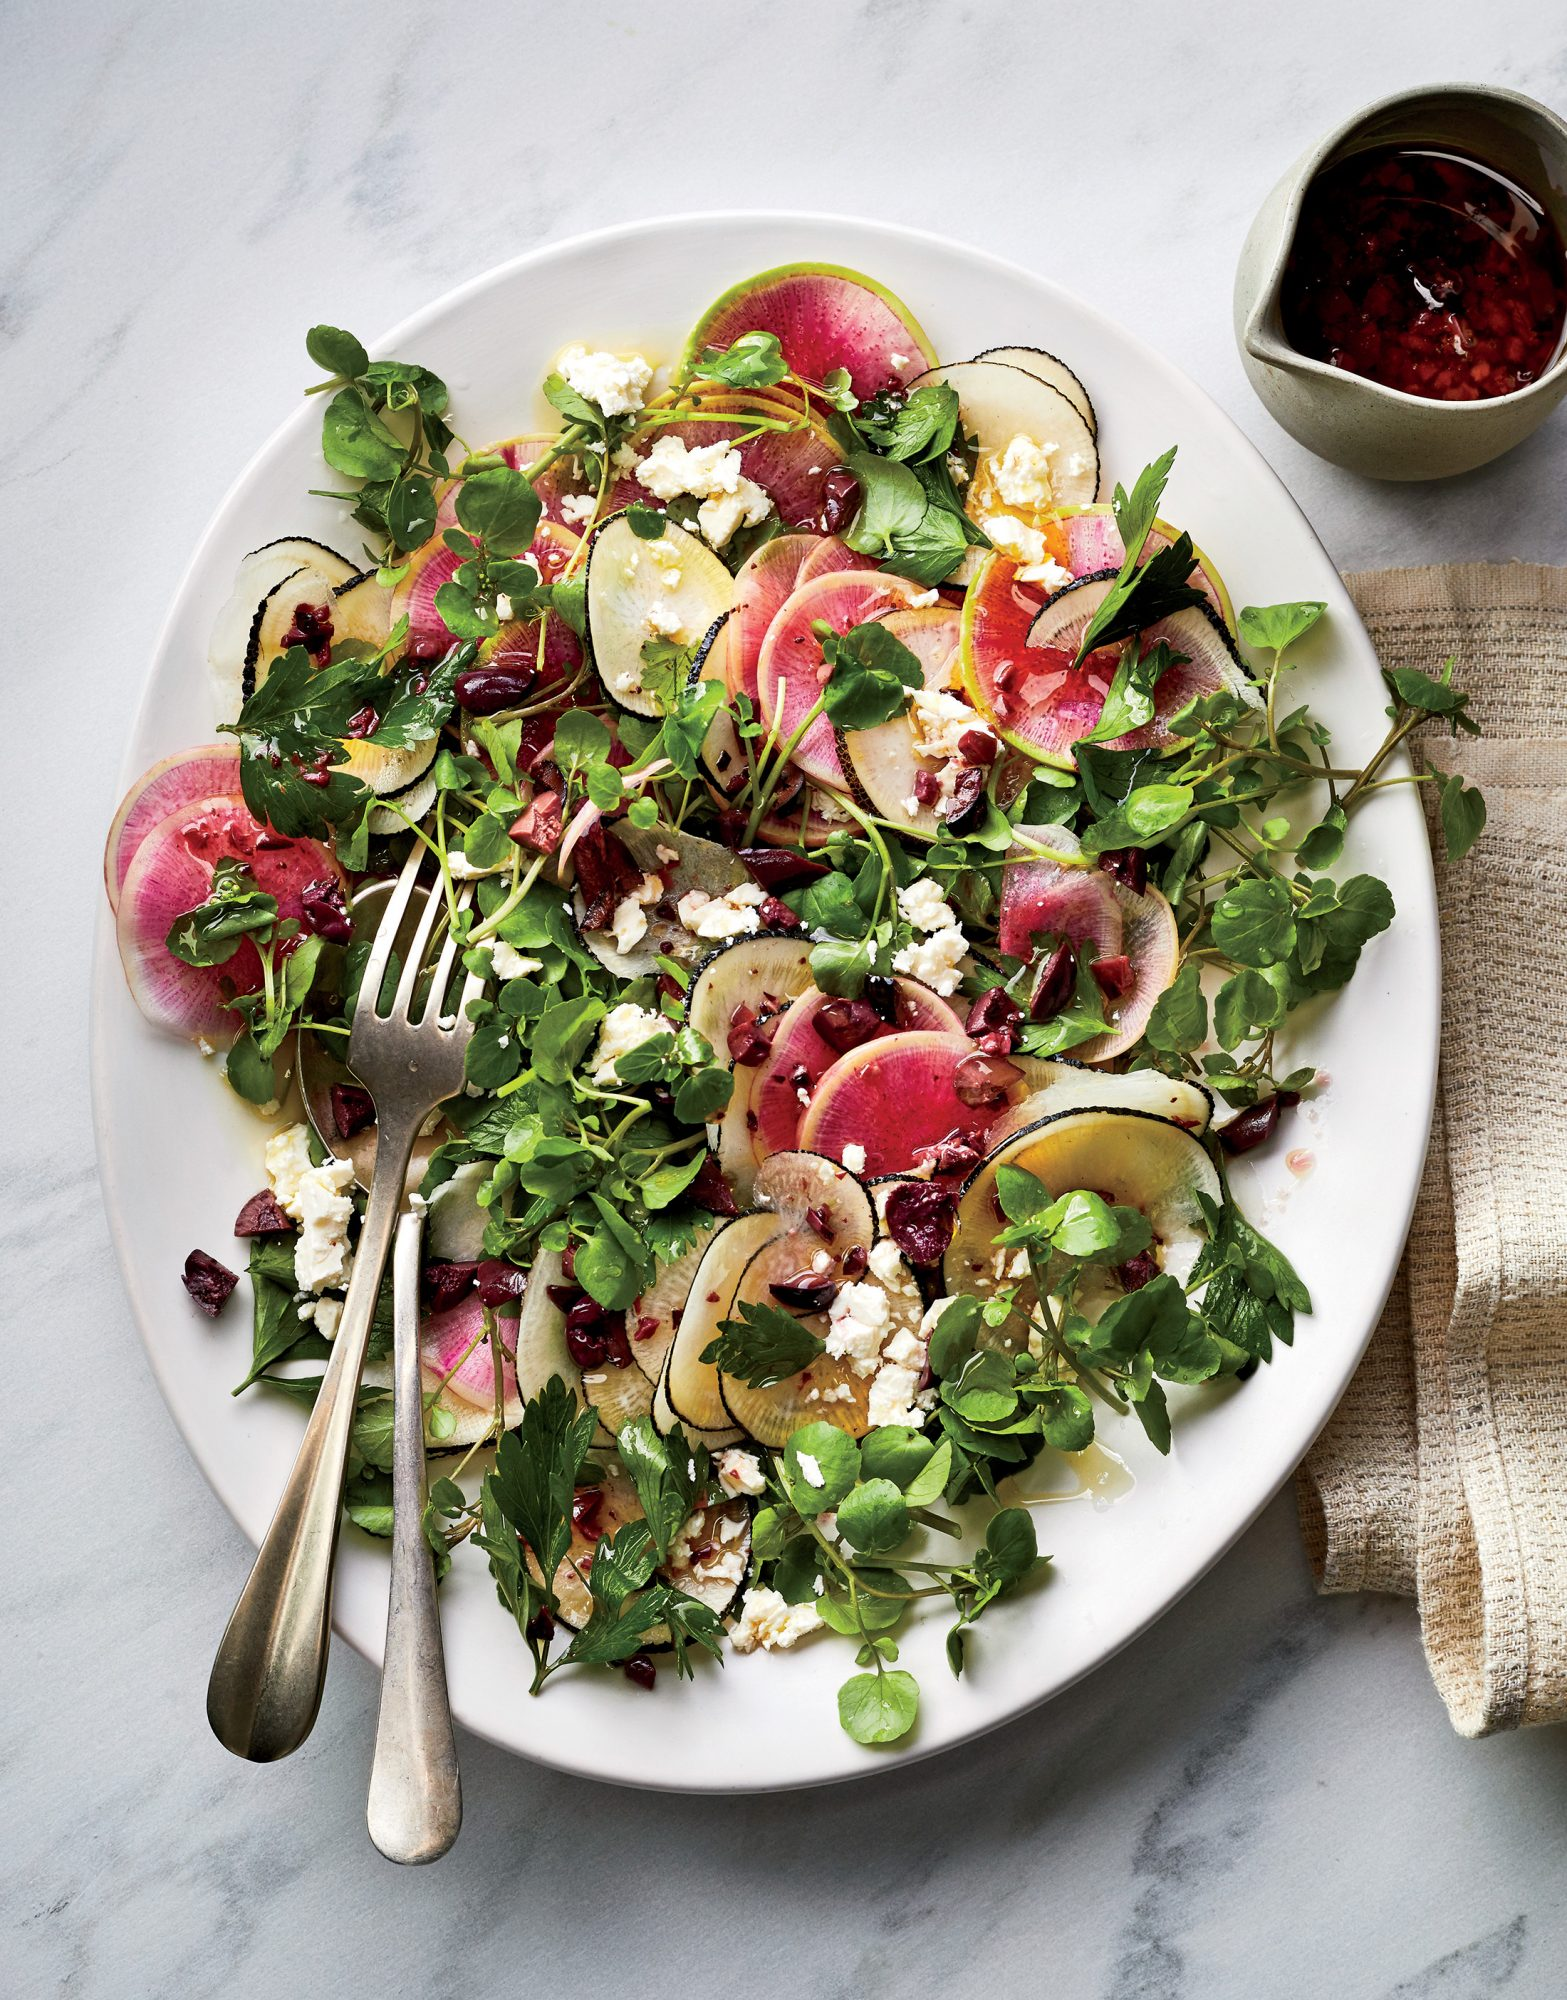 Winter Radish Salad With Parsley And Olives